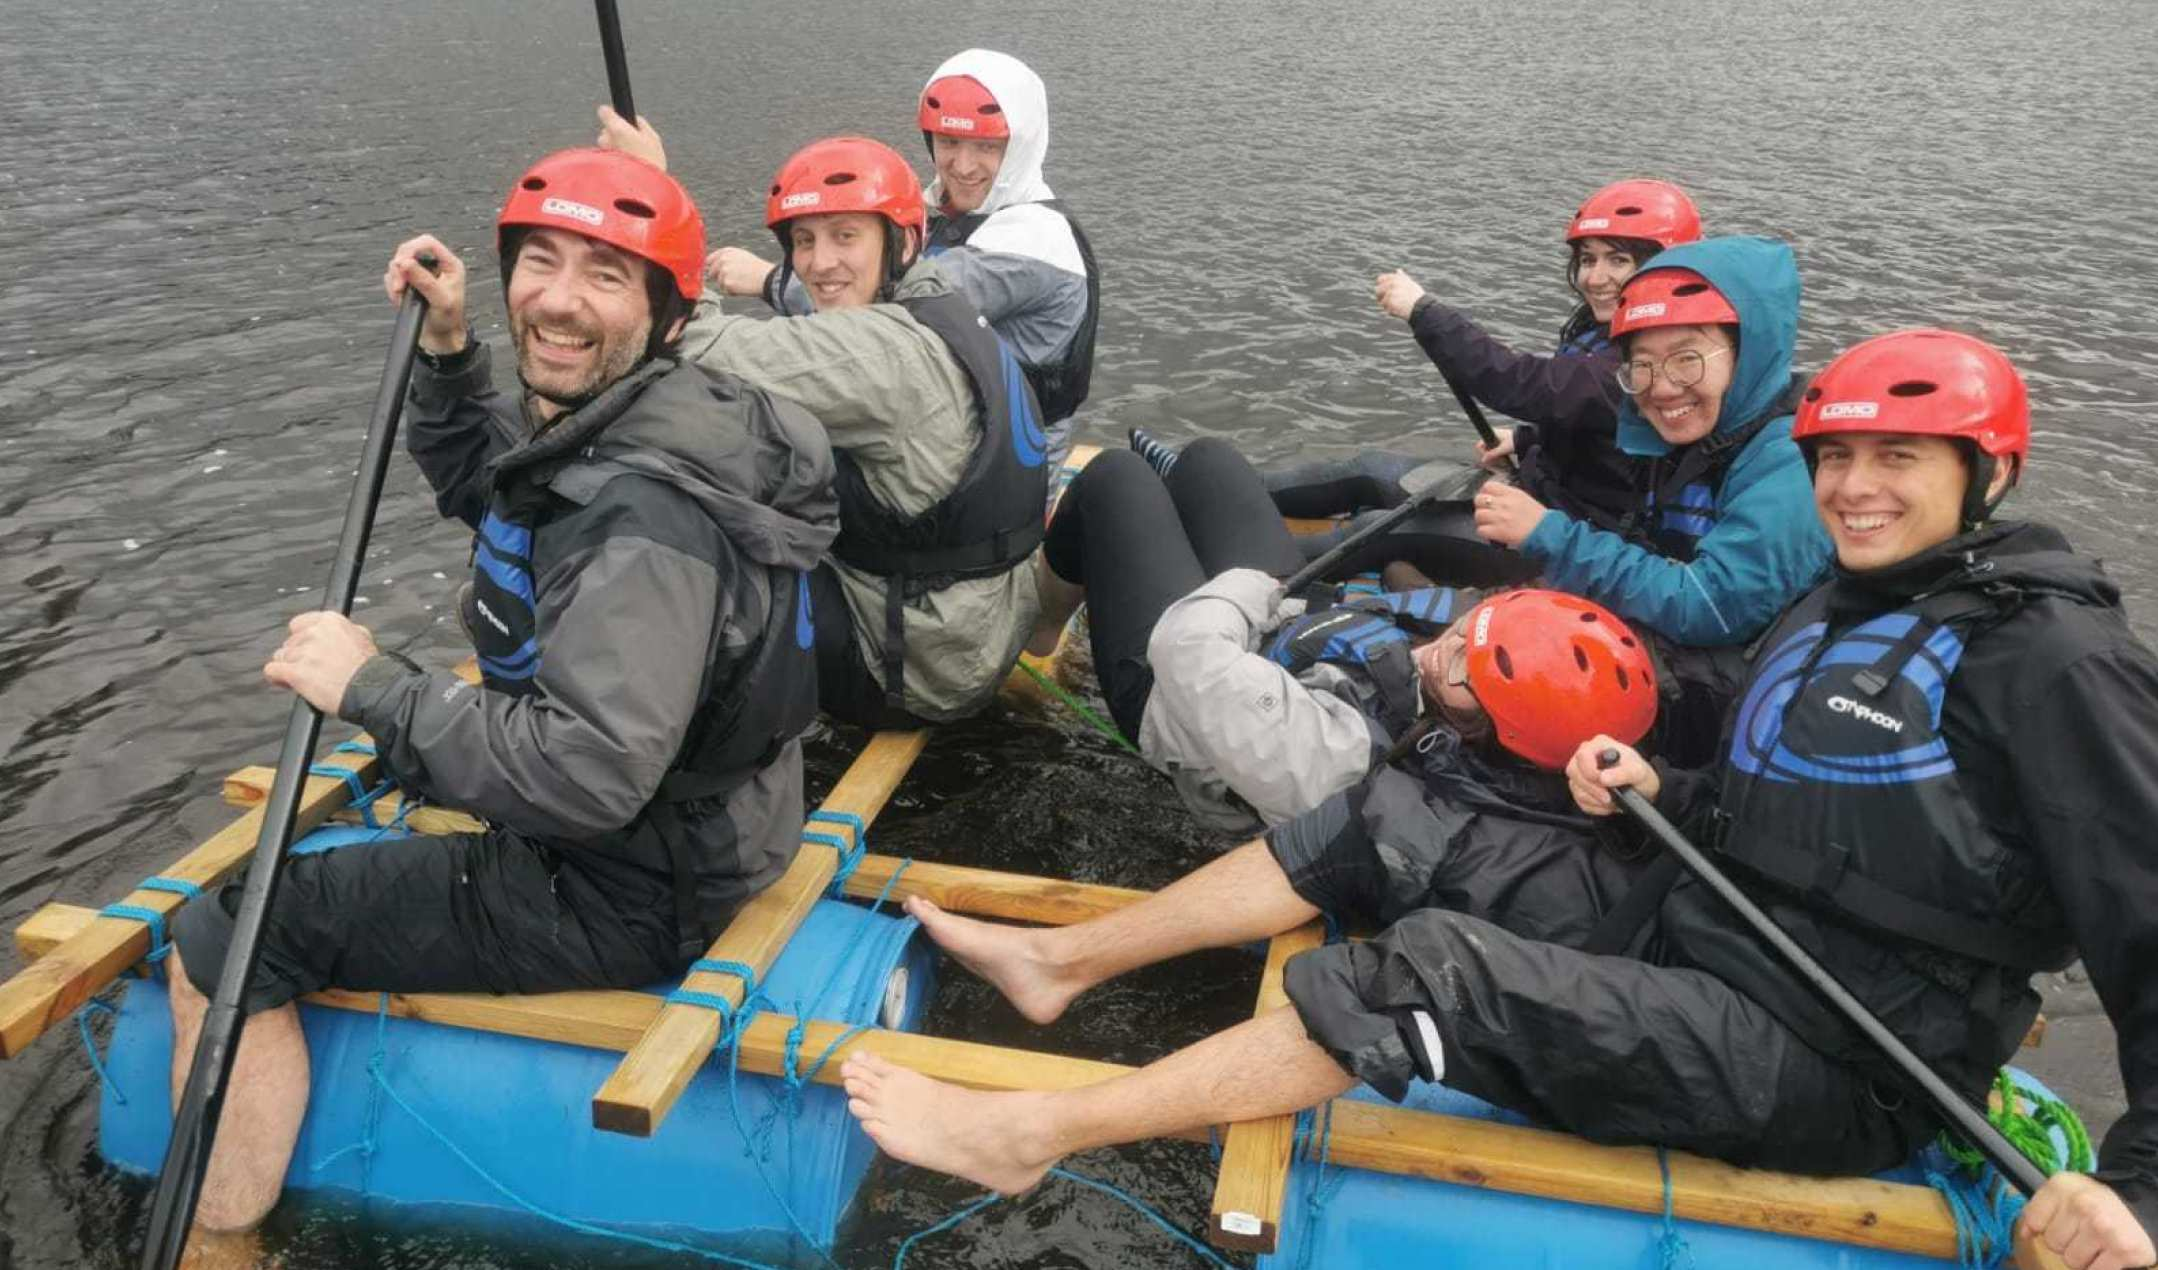 Group on floating raft